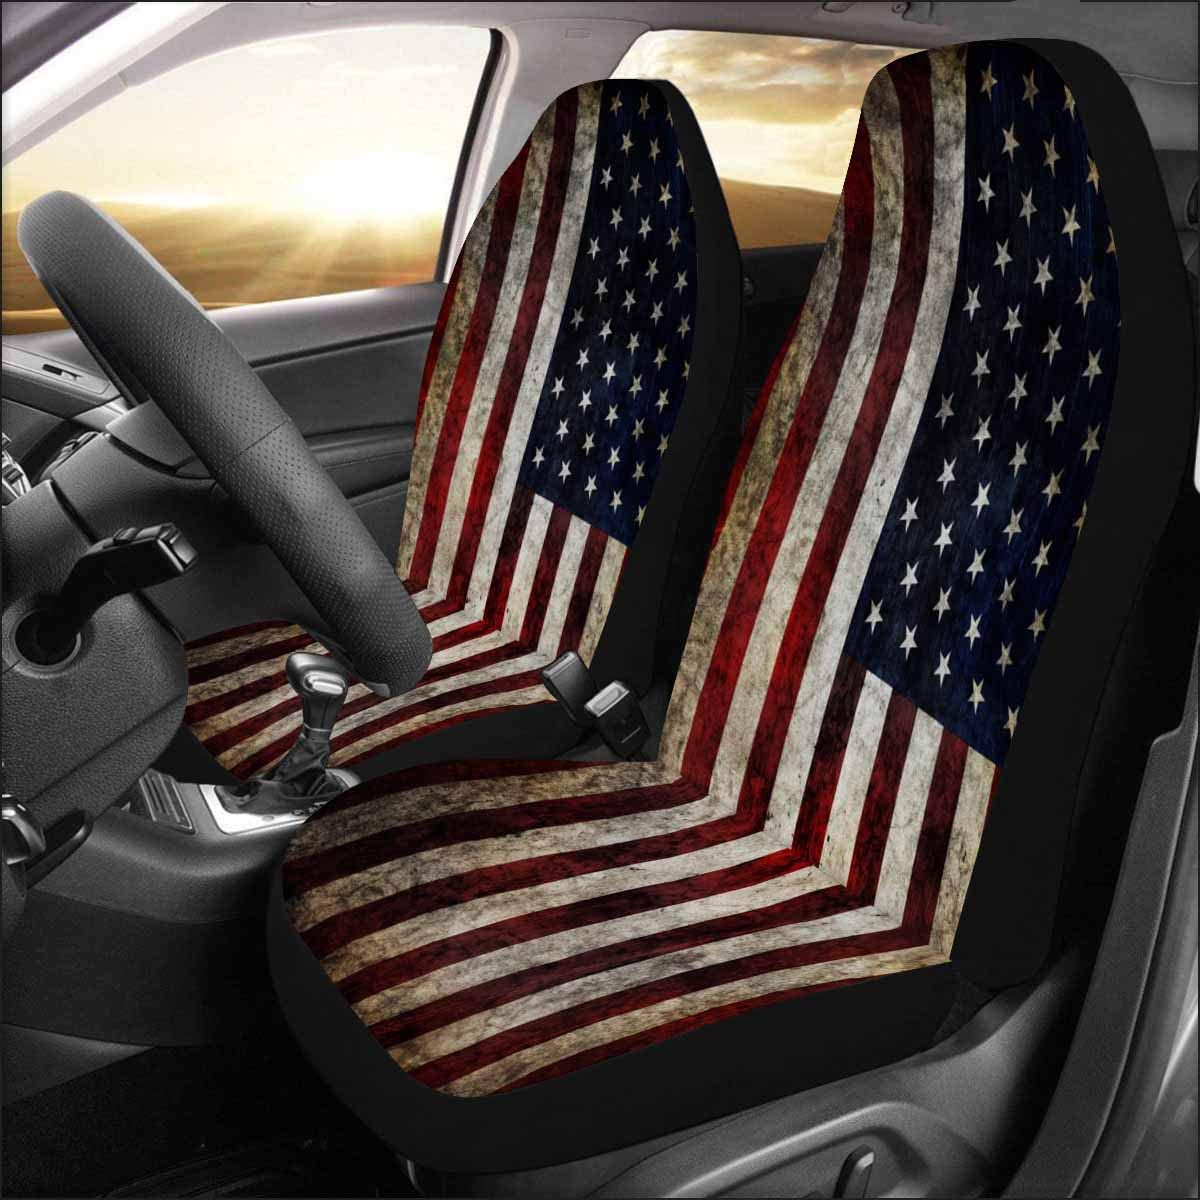 INTERESTPRINT Auto Seat Covers Full Set of 2, Universal fit for Vehicles, Sedan and Jeep